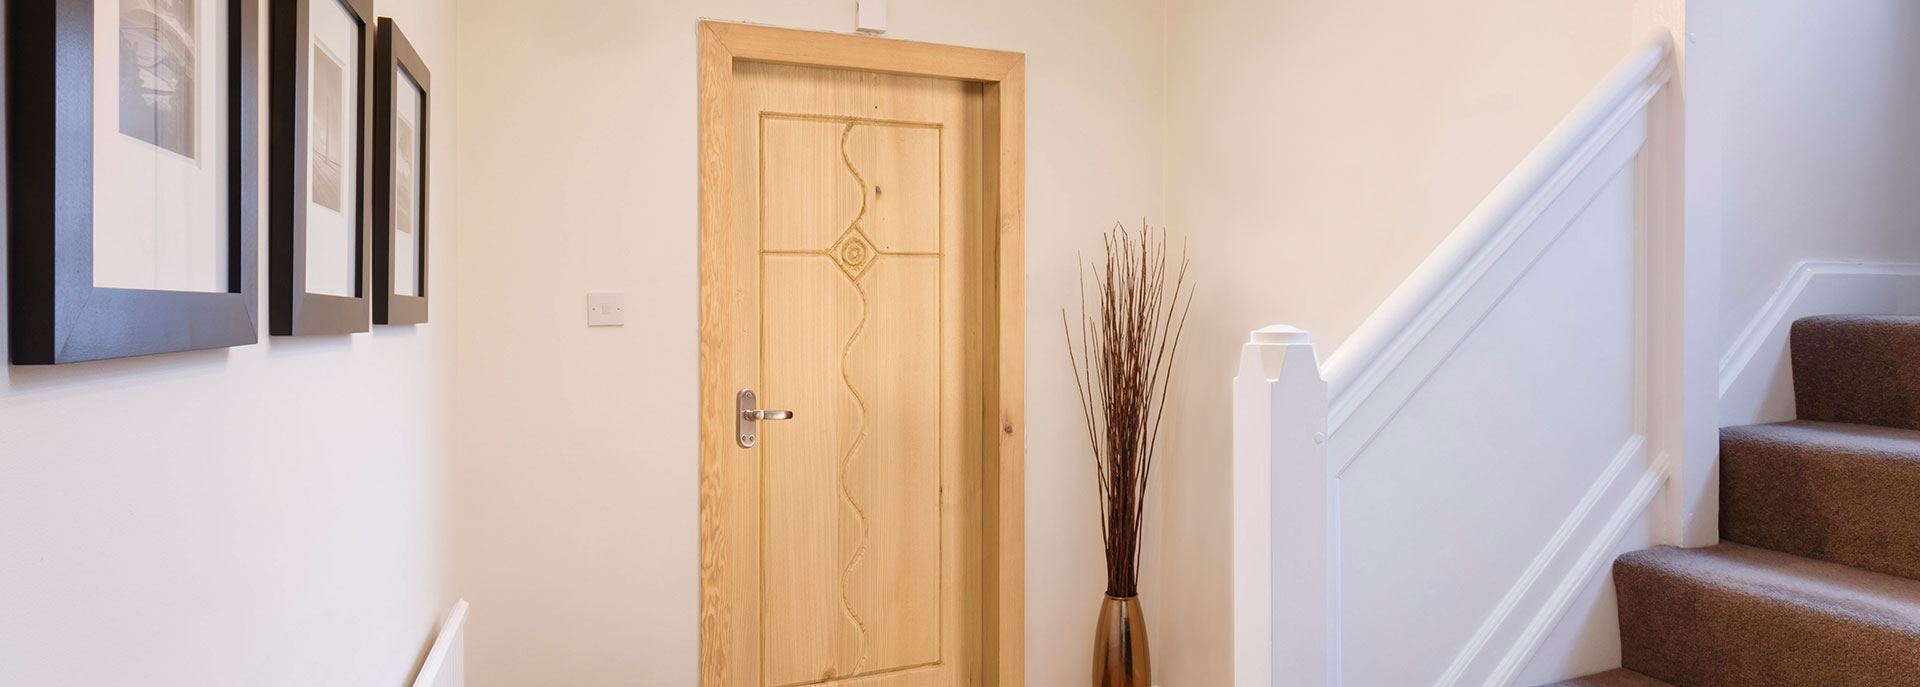 Western Hemlock Wooden Door - Canadian Wood